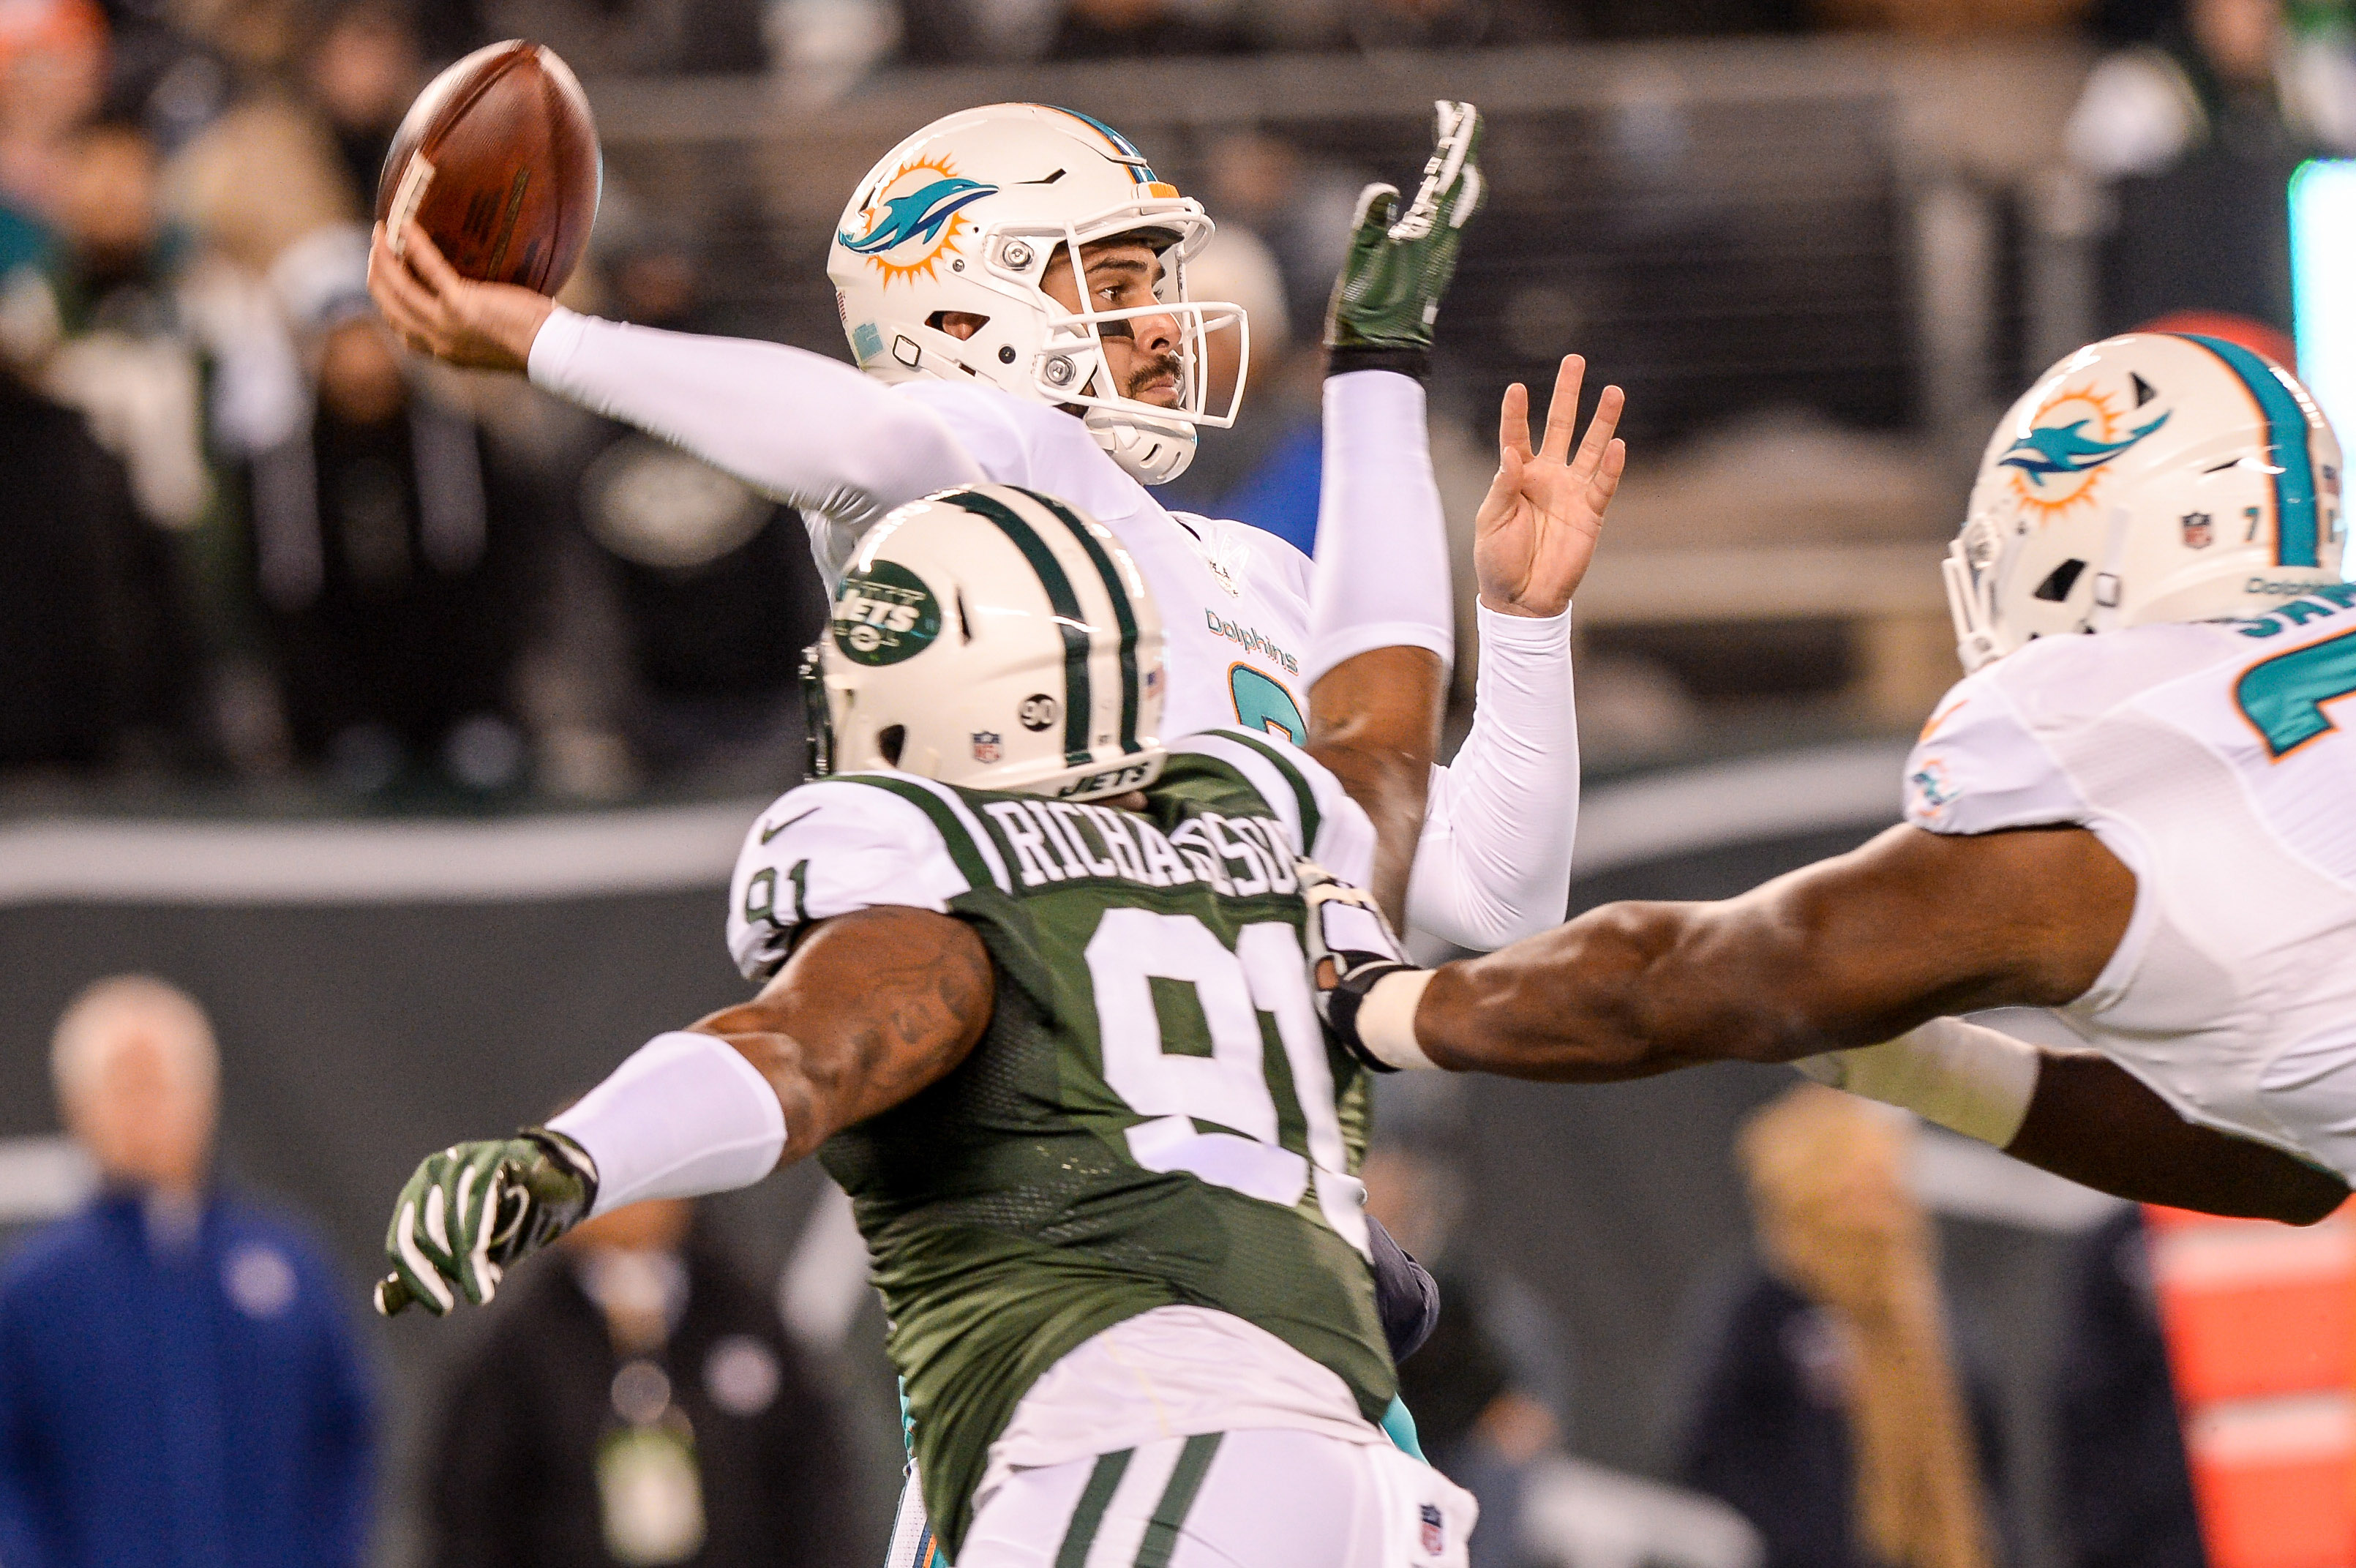 9753074-nfl-miami-dolphins-at-new-york-jets-1